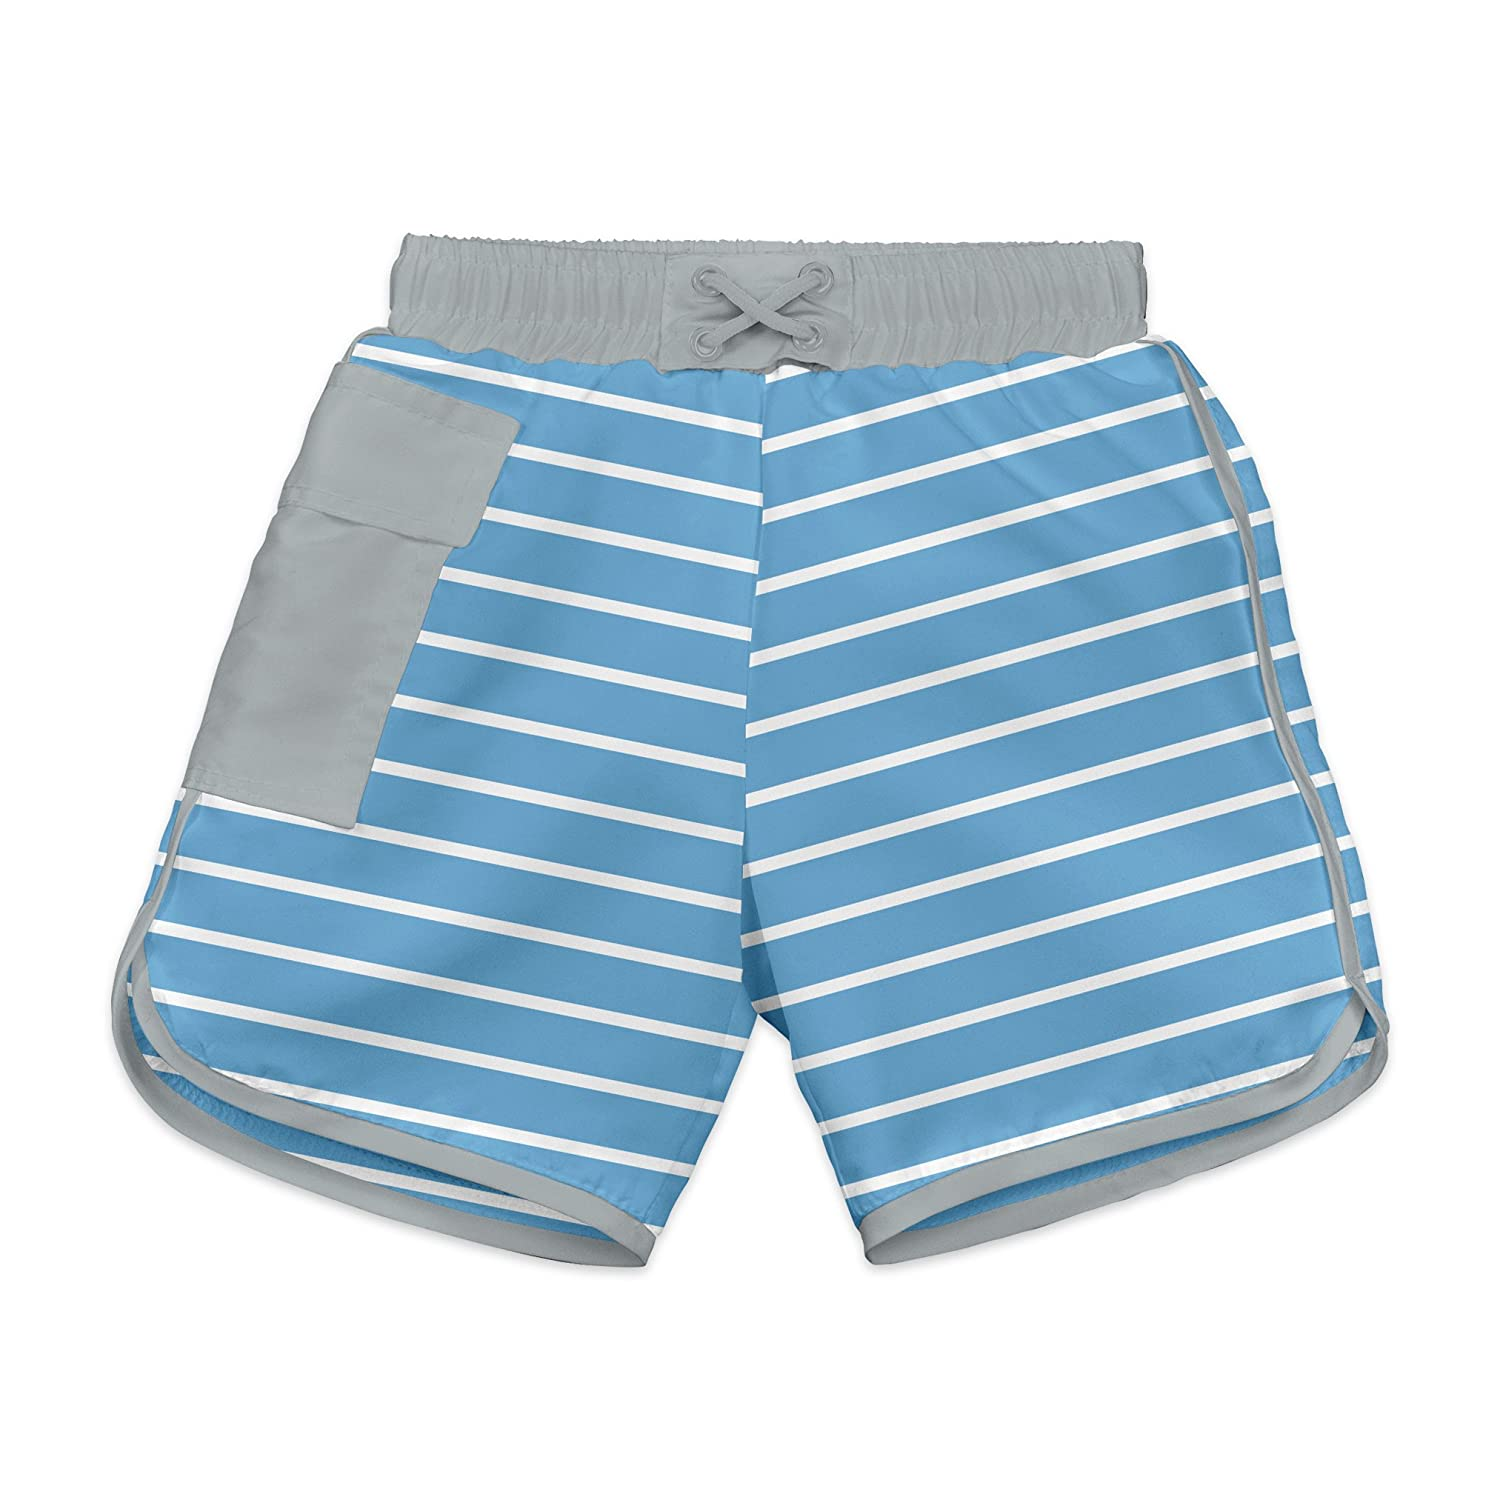 i play. Baby Boys Pocket Board Shorts W/Built-in Reusable Absorbent Swim Diaper i play Children's Apparel 722187-614-43